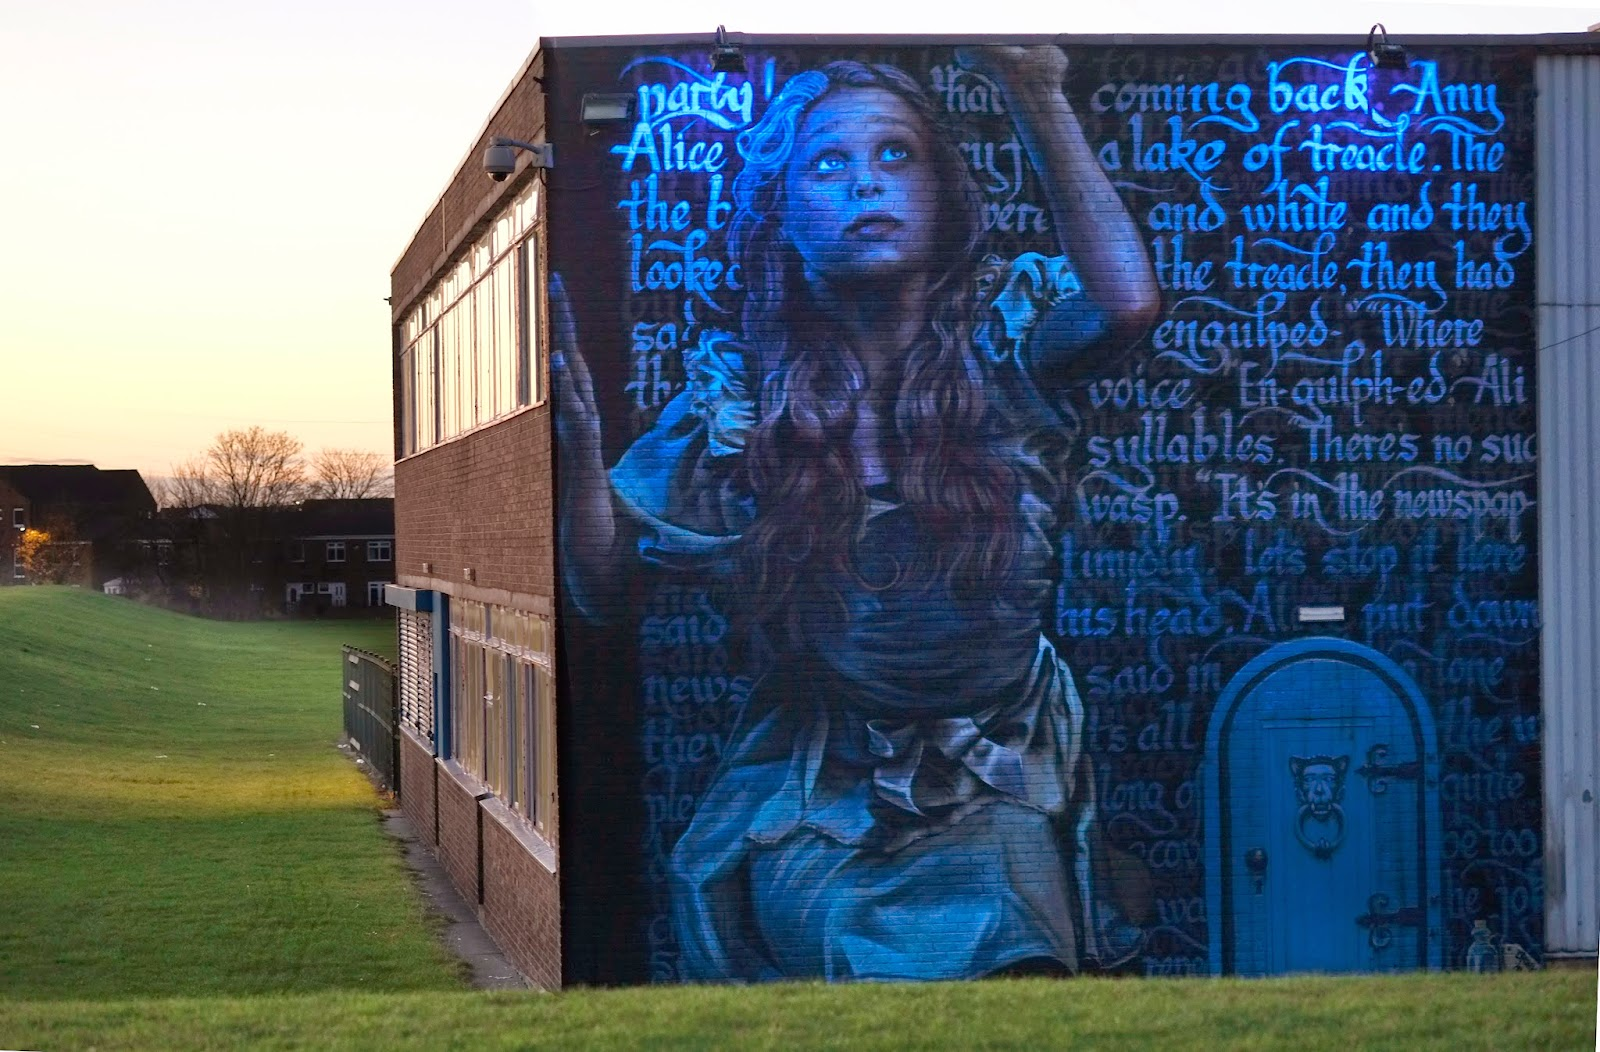 """Irony just finished working a collaboration with Frank Styles who added the calligraphy to the piece which depicts Alice from the classic story """"Alice in Wonderland""""."""